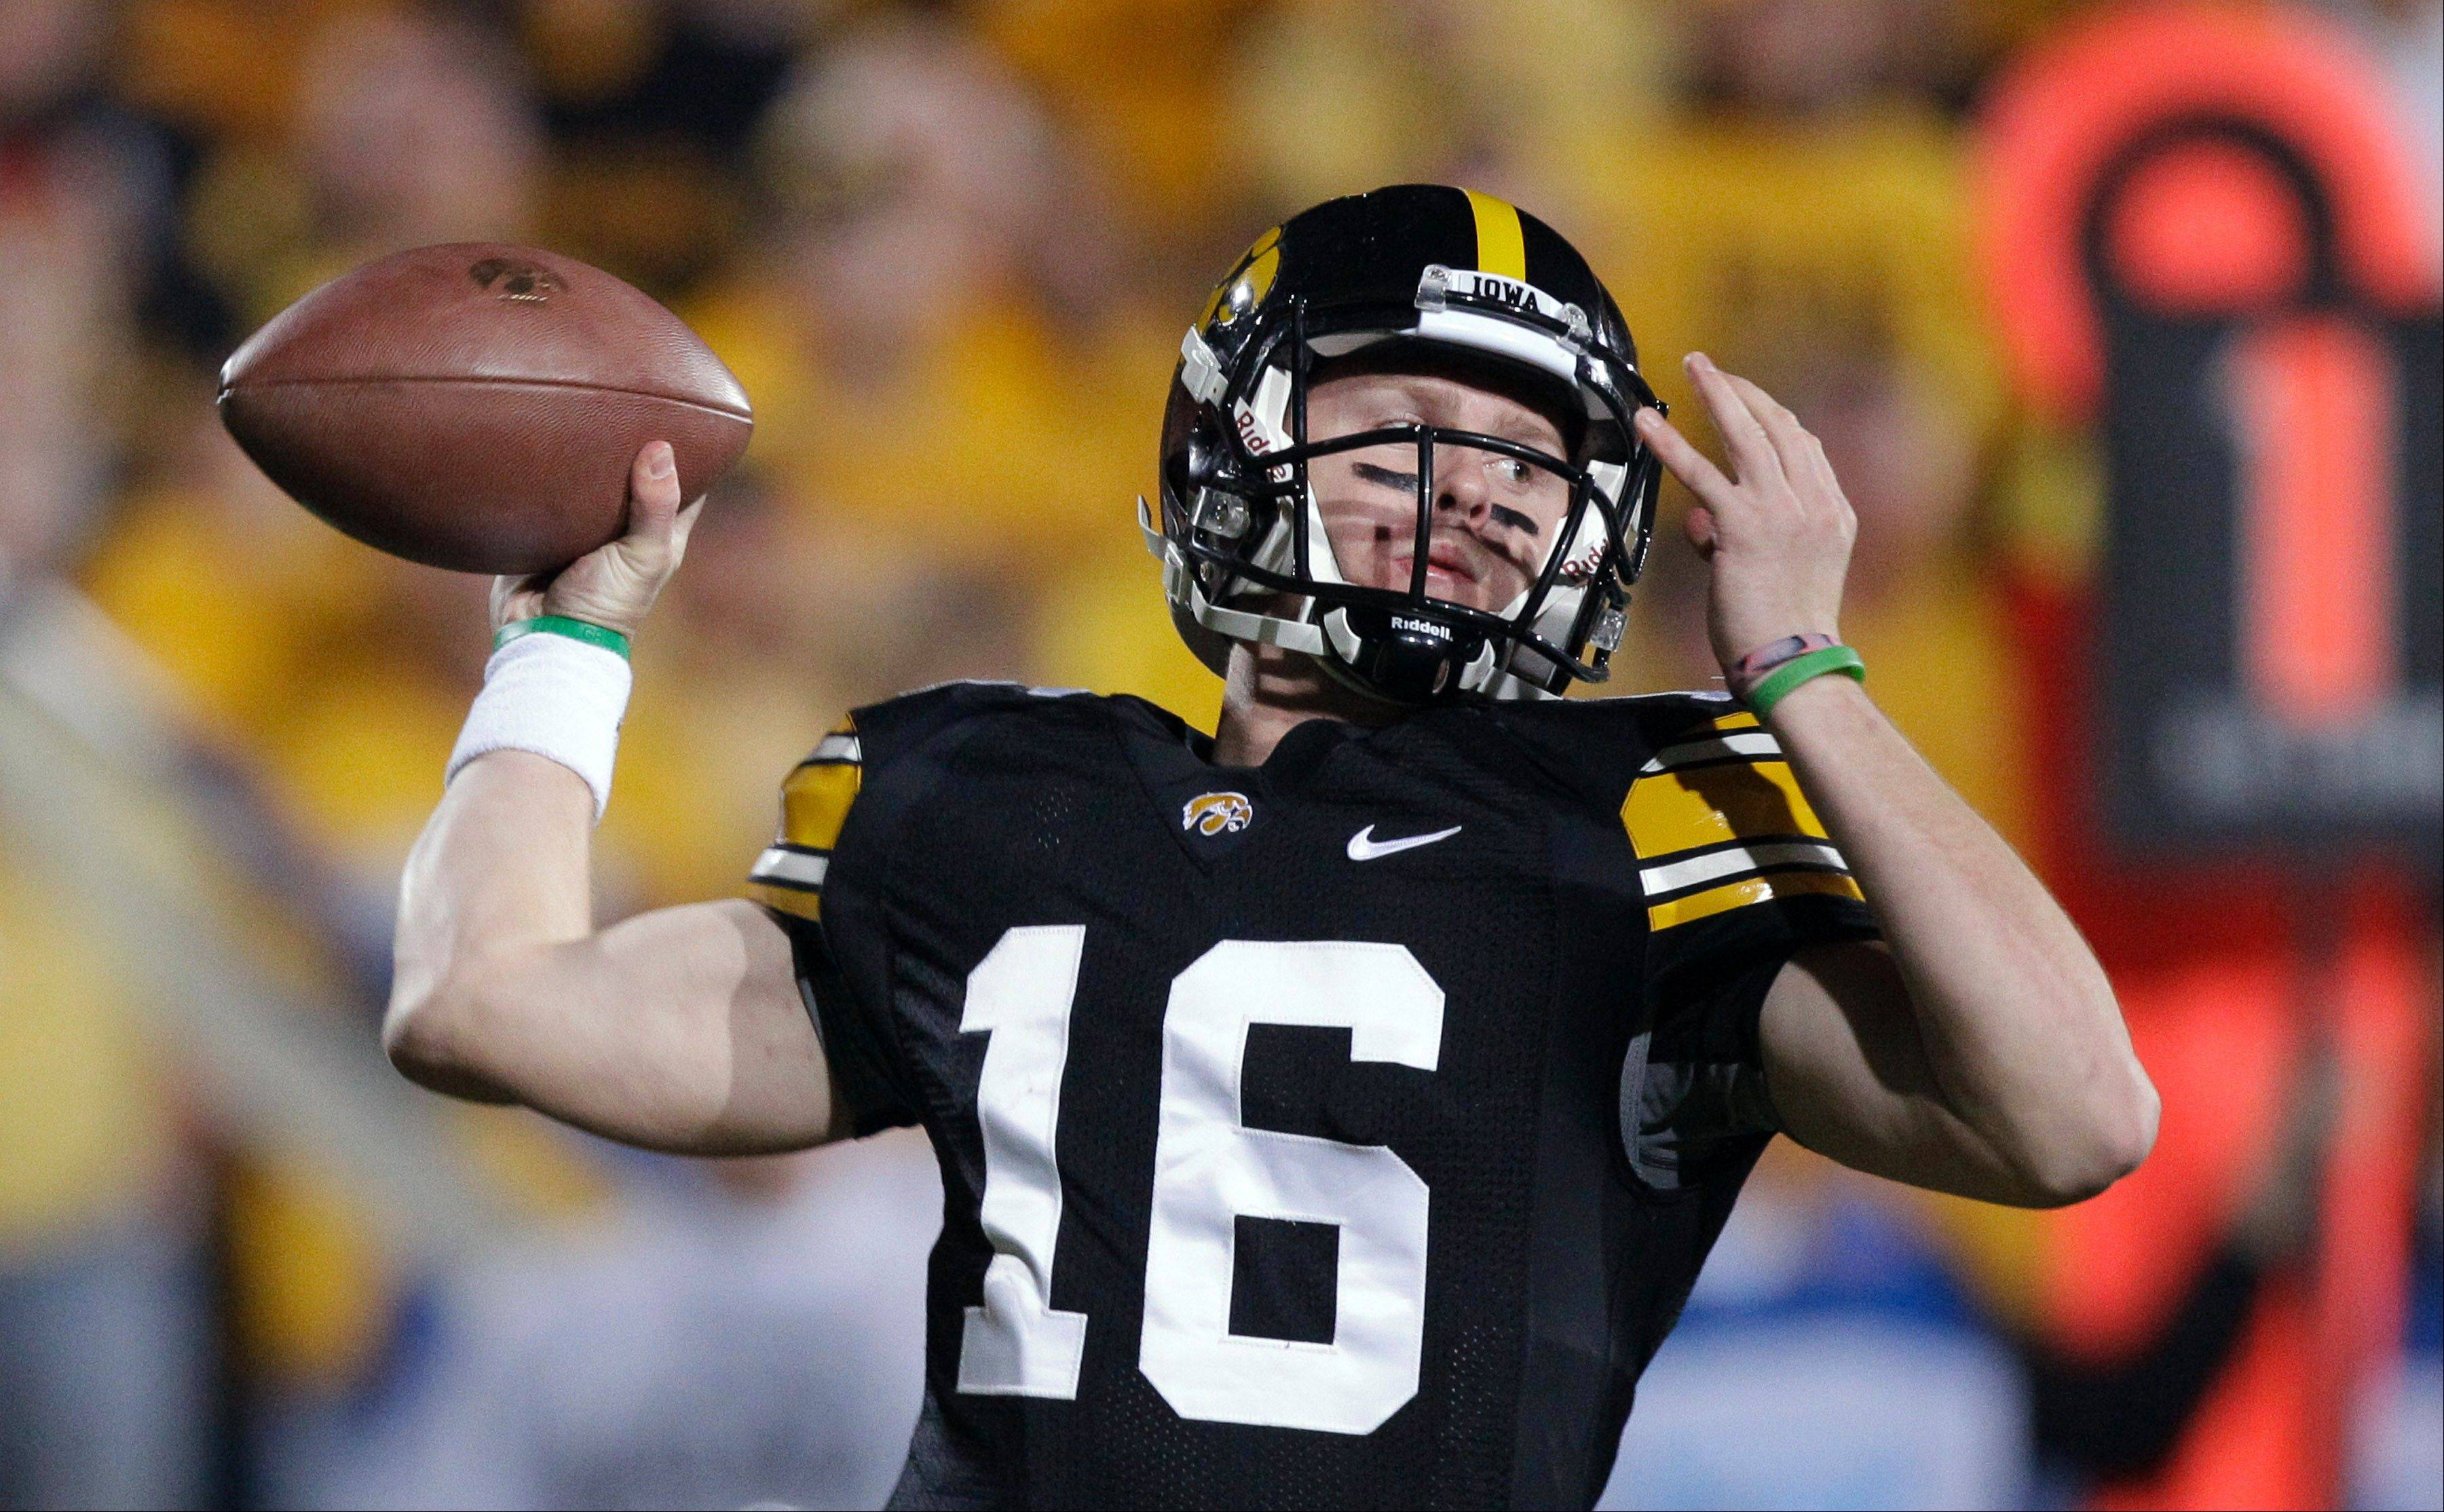 Last season Iowa quarterback James Vandenberg led the Hawkeyes to a 41-31 win over Northwestern in Iowa City. Vandenberg, who has struggled and thrown only 3 TD passes this season, will start against the Wildcats this Saturday in Evanston.